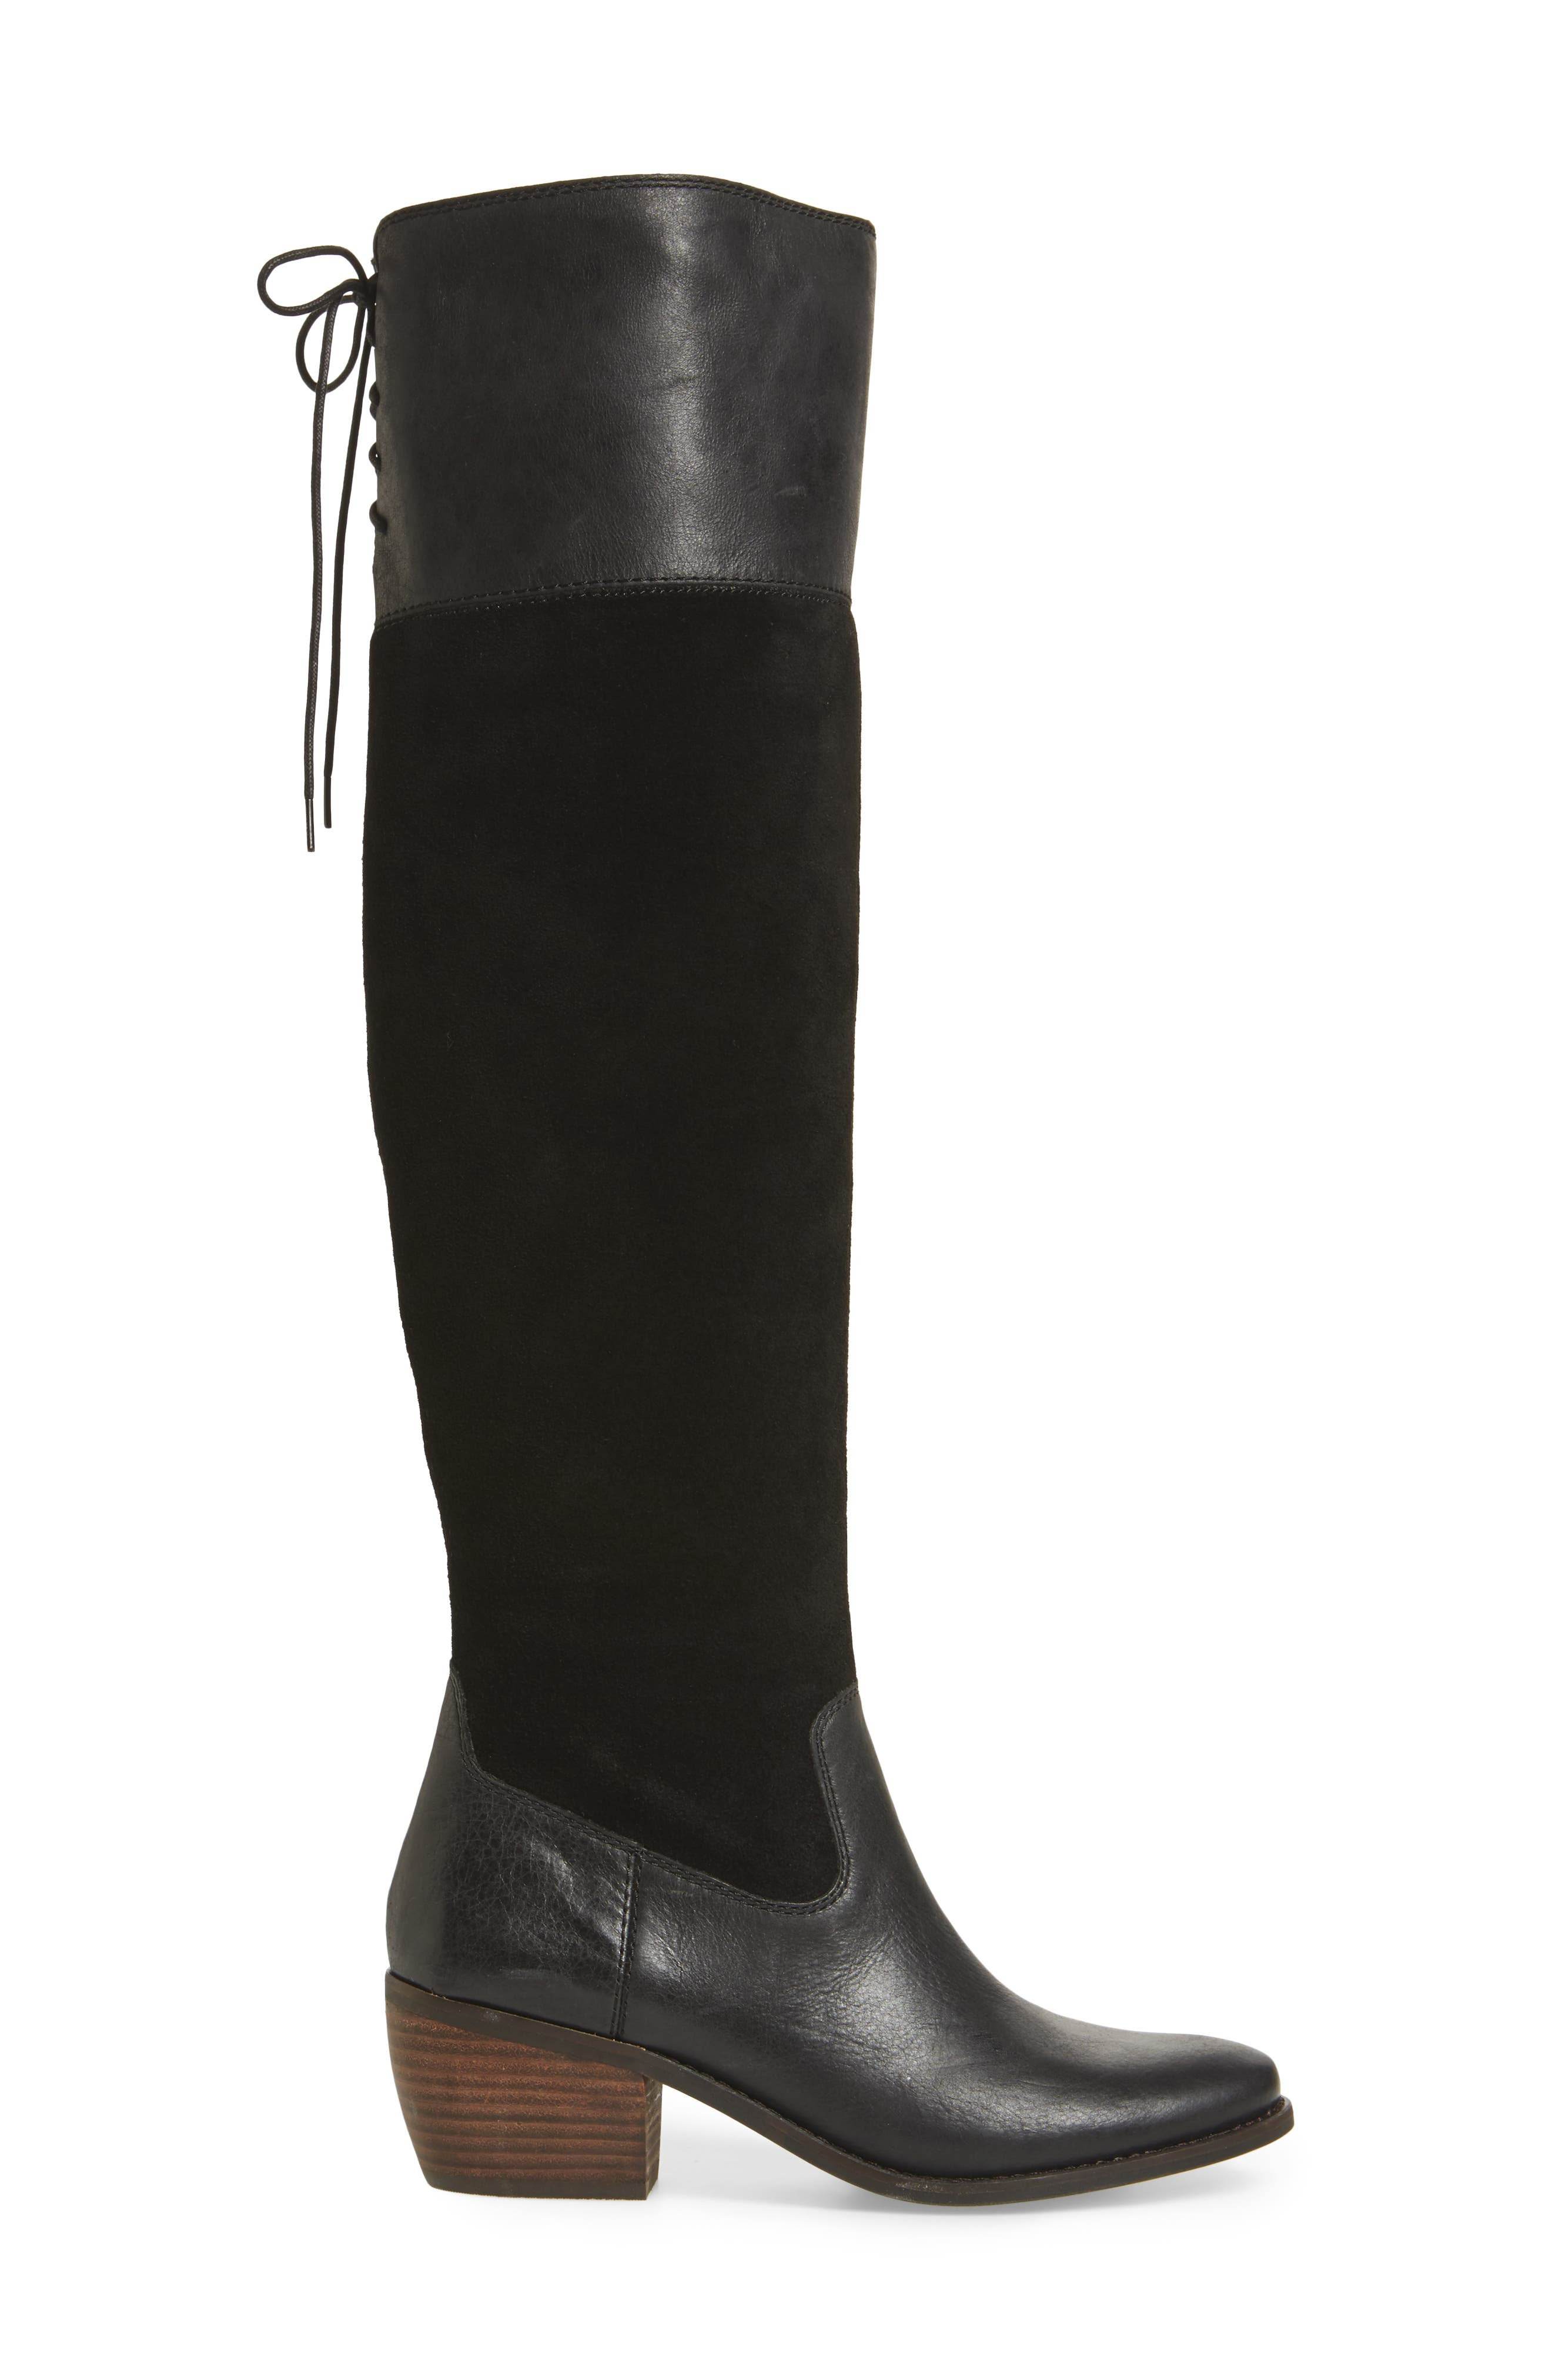 Komah Over the Knee Boot,                             Alternate thumbnail 3, color,                             001